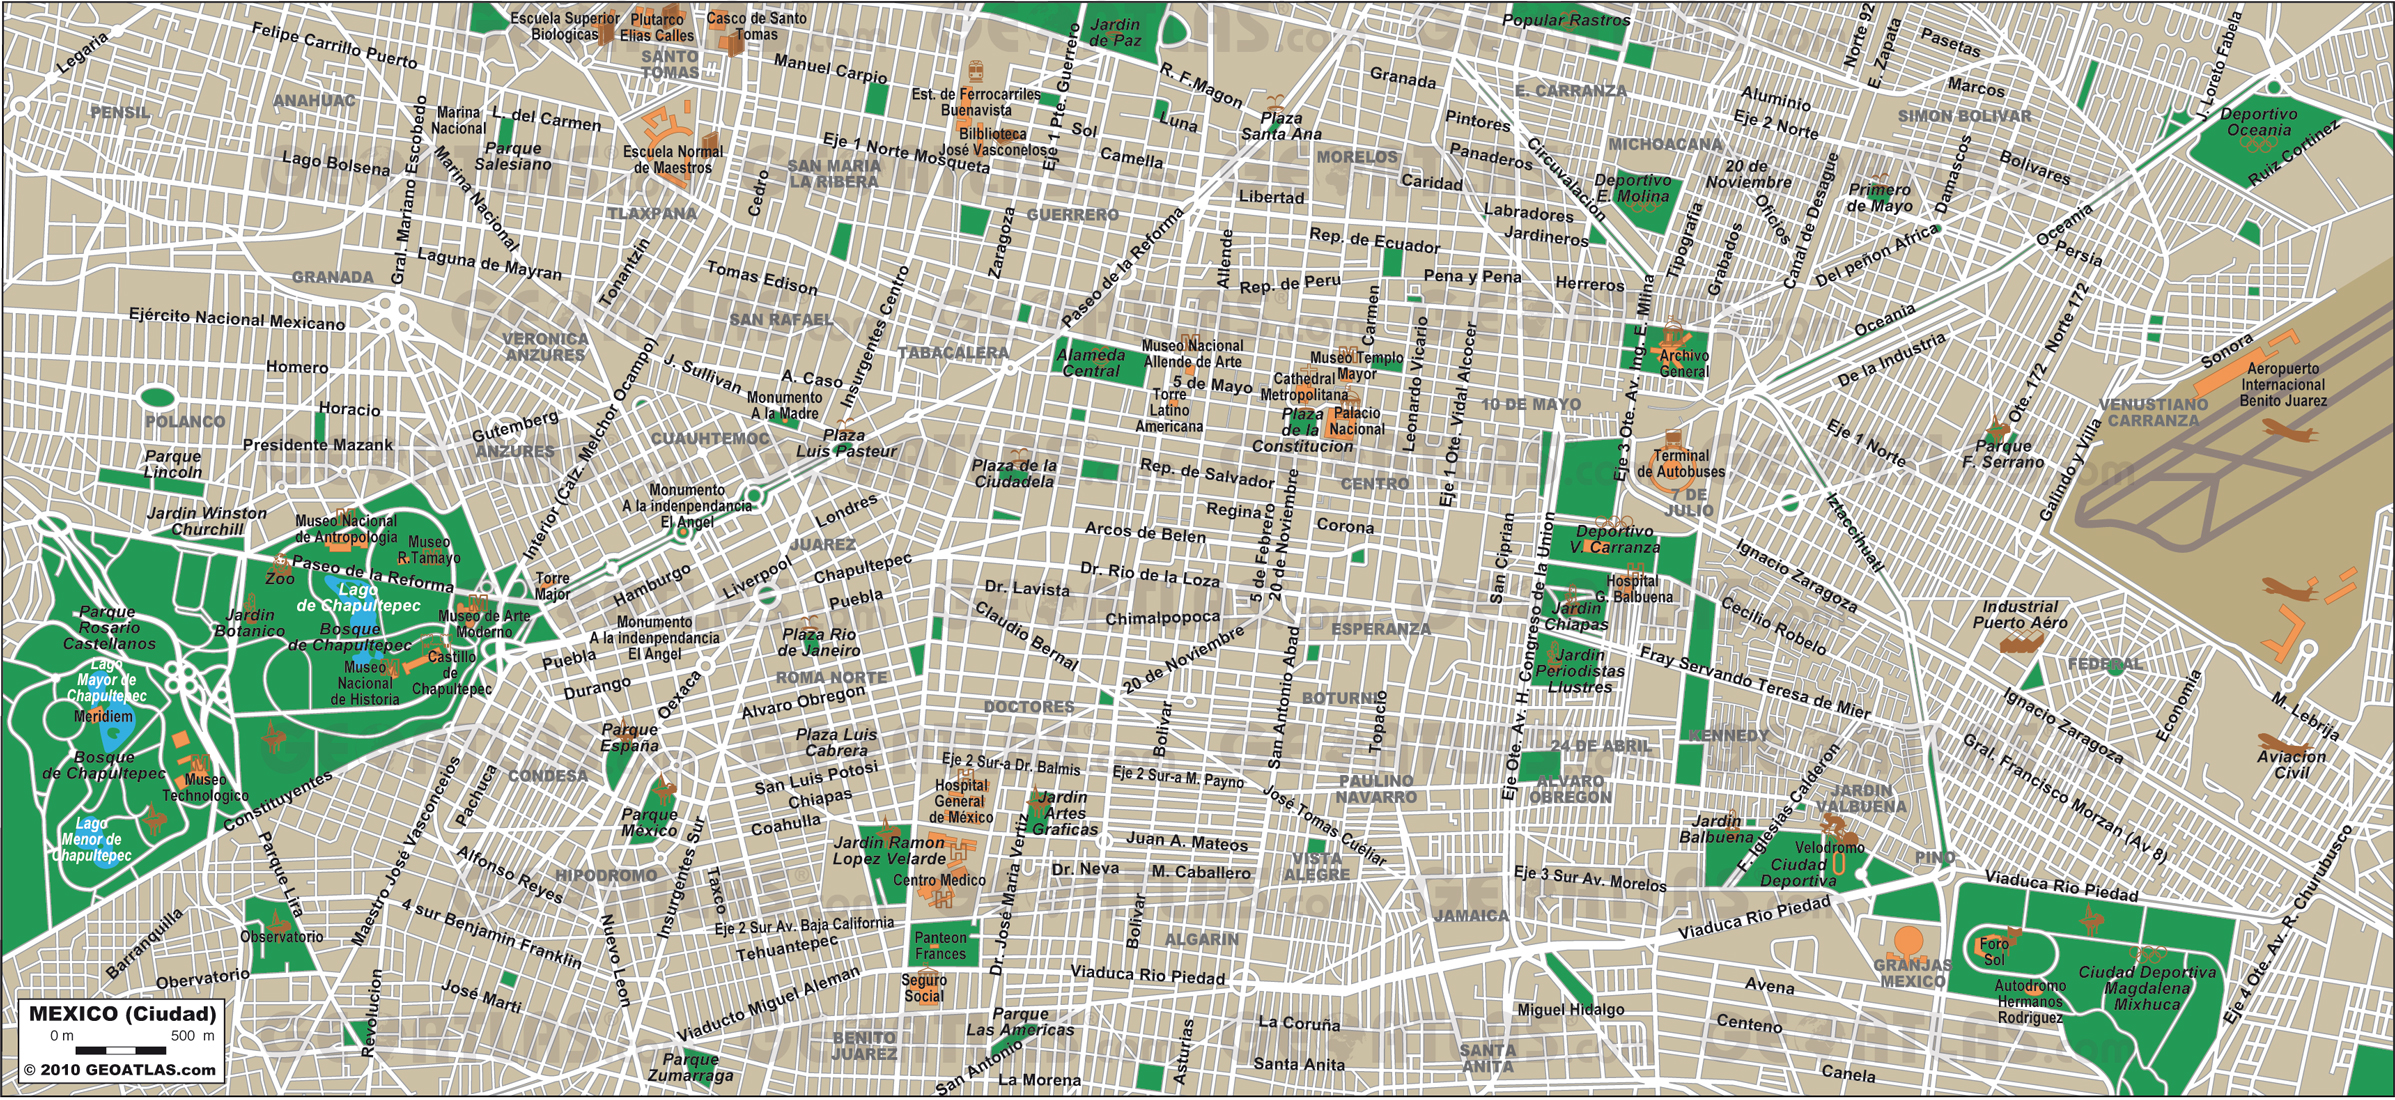 www.Mappi.net : Maps of cities : Mexico